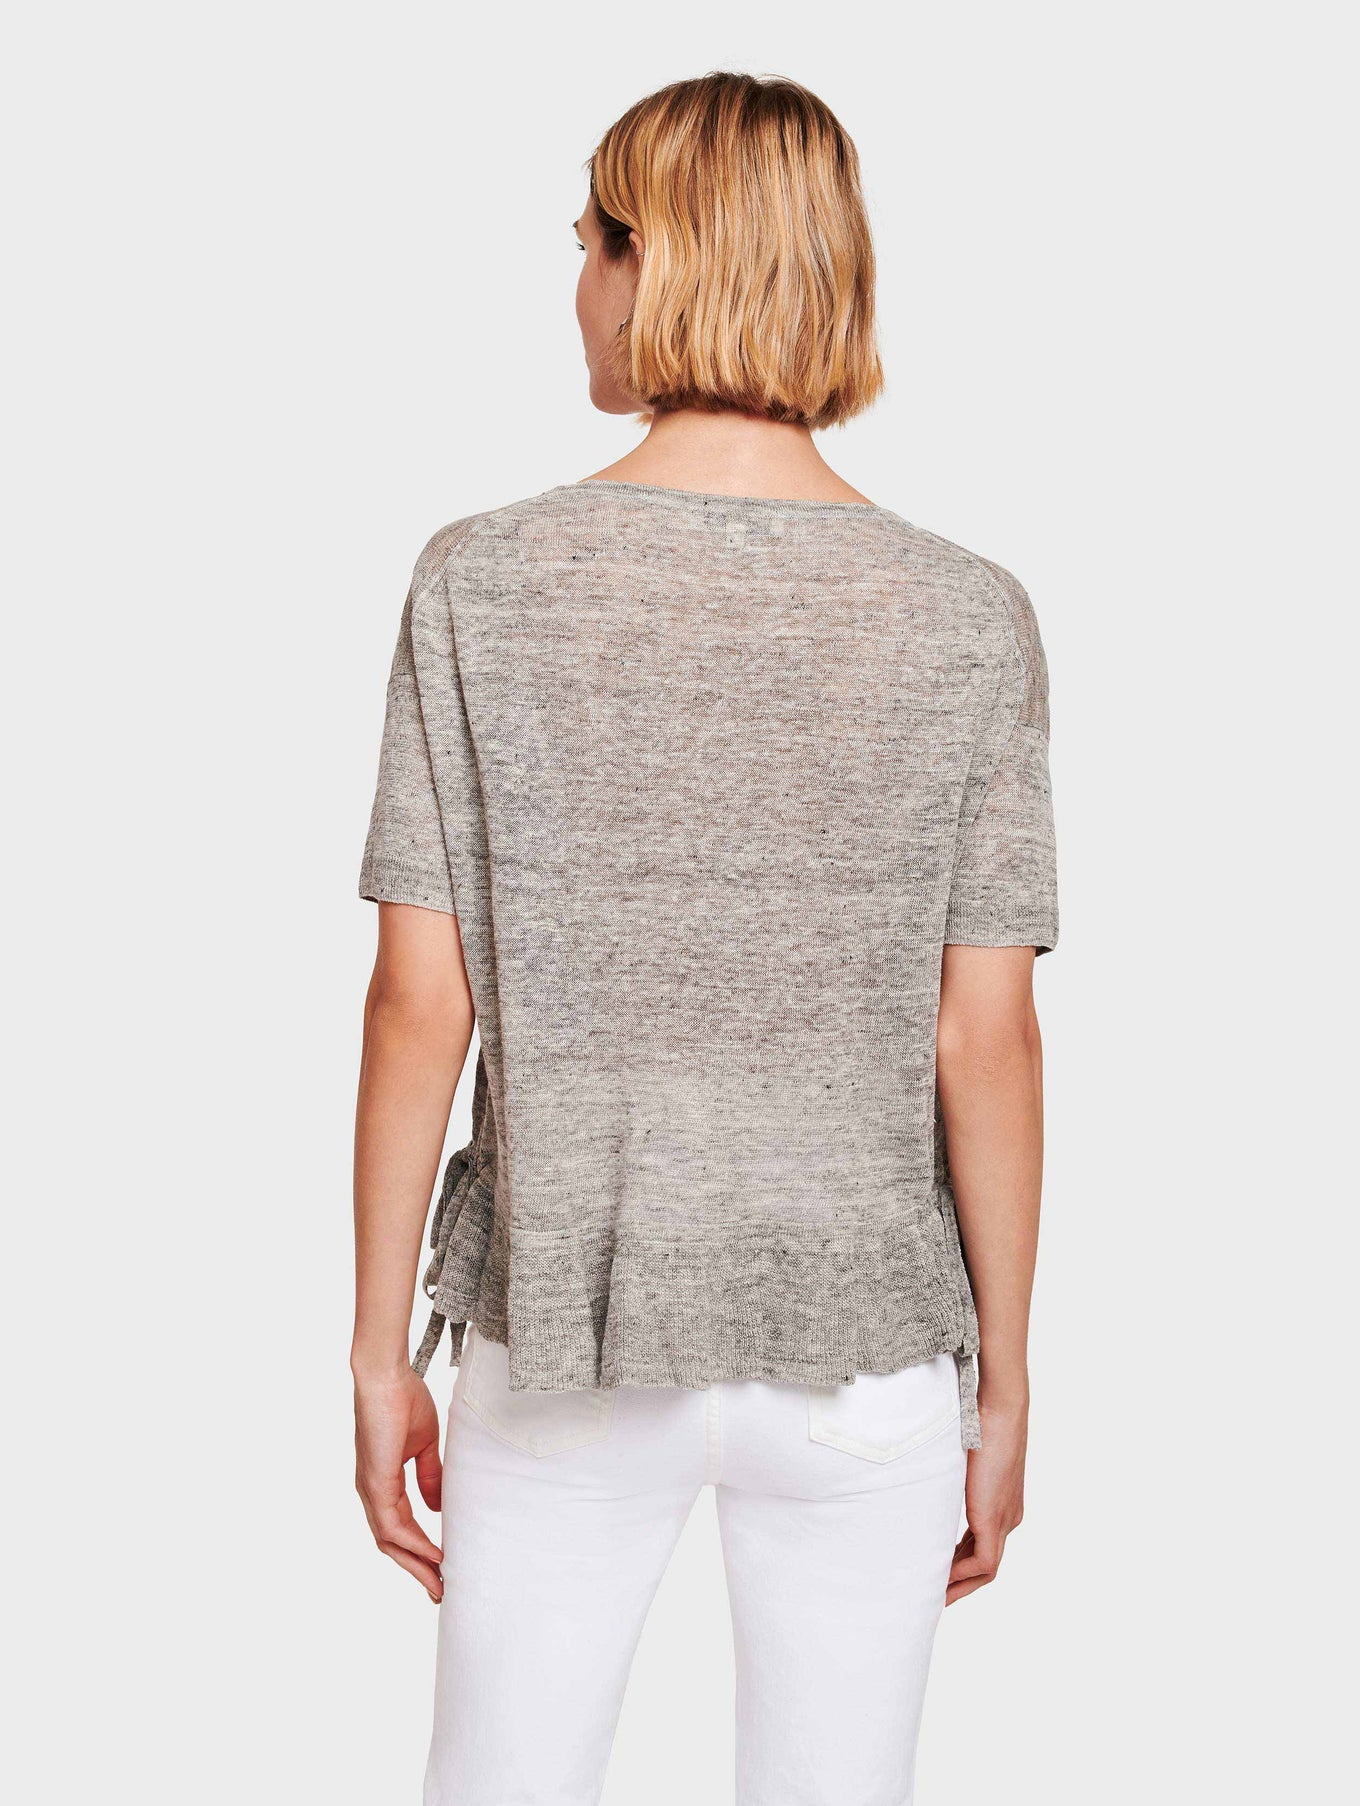 Linen Drawcord Ruffle Tee - Shadow Heather - Image 3